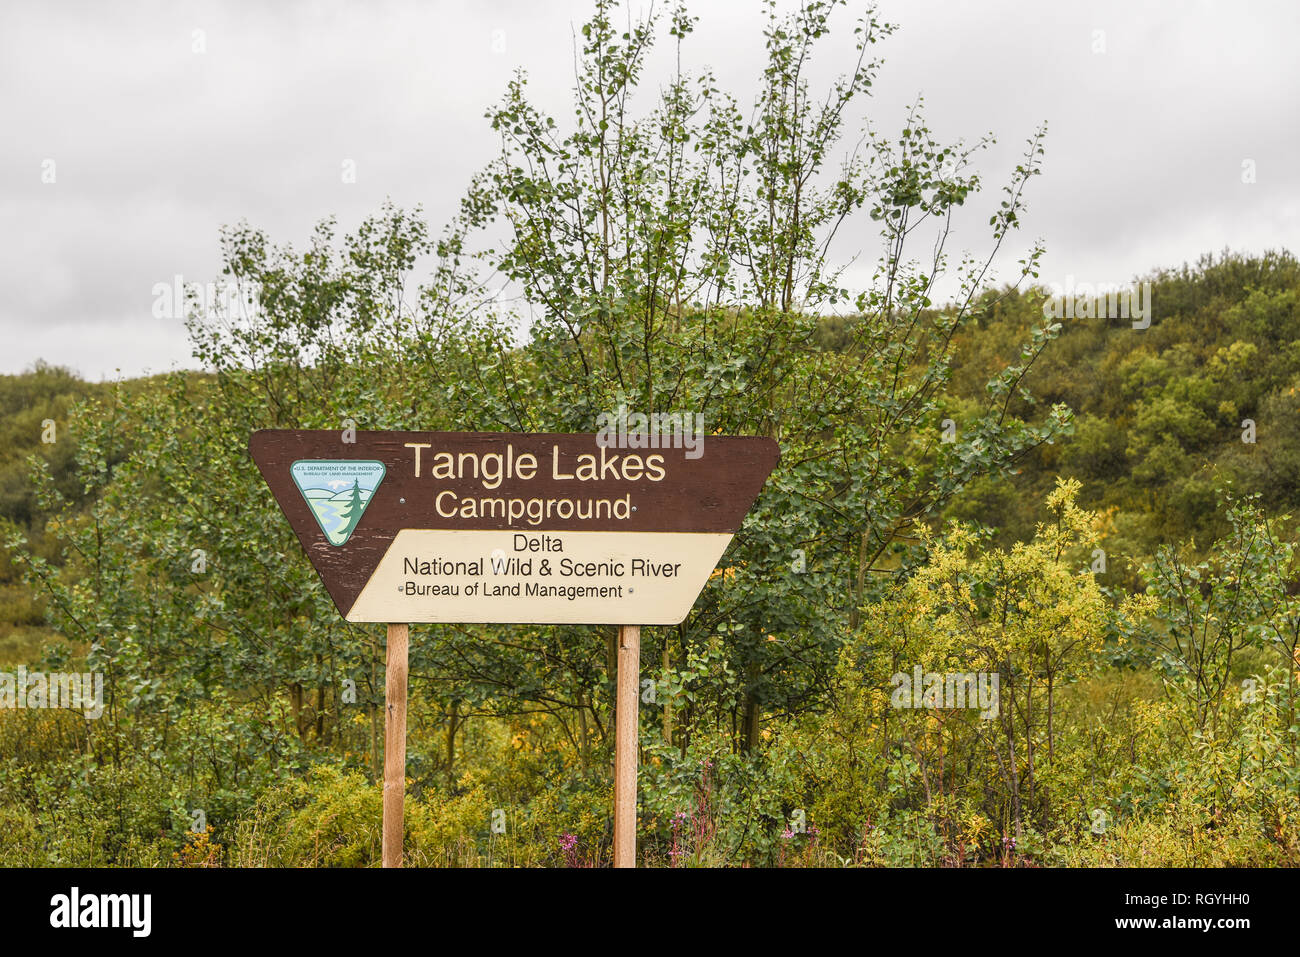 Sign for Tangle Lake Campground, BLM property and management, near the Paxson end of the Denali Highway, Alaska, USA. - Stock Image